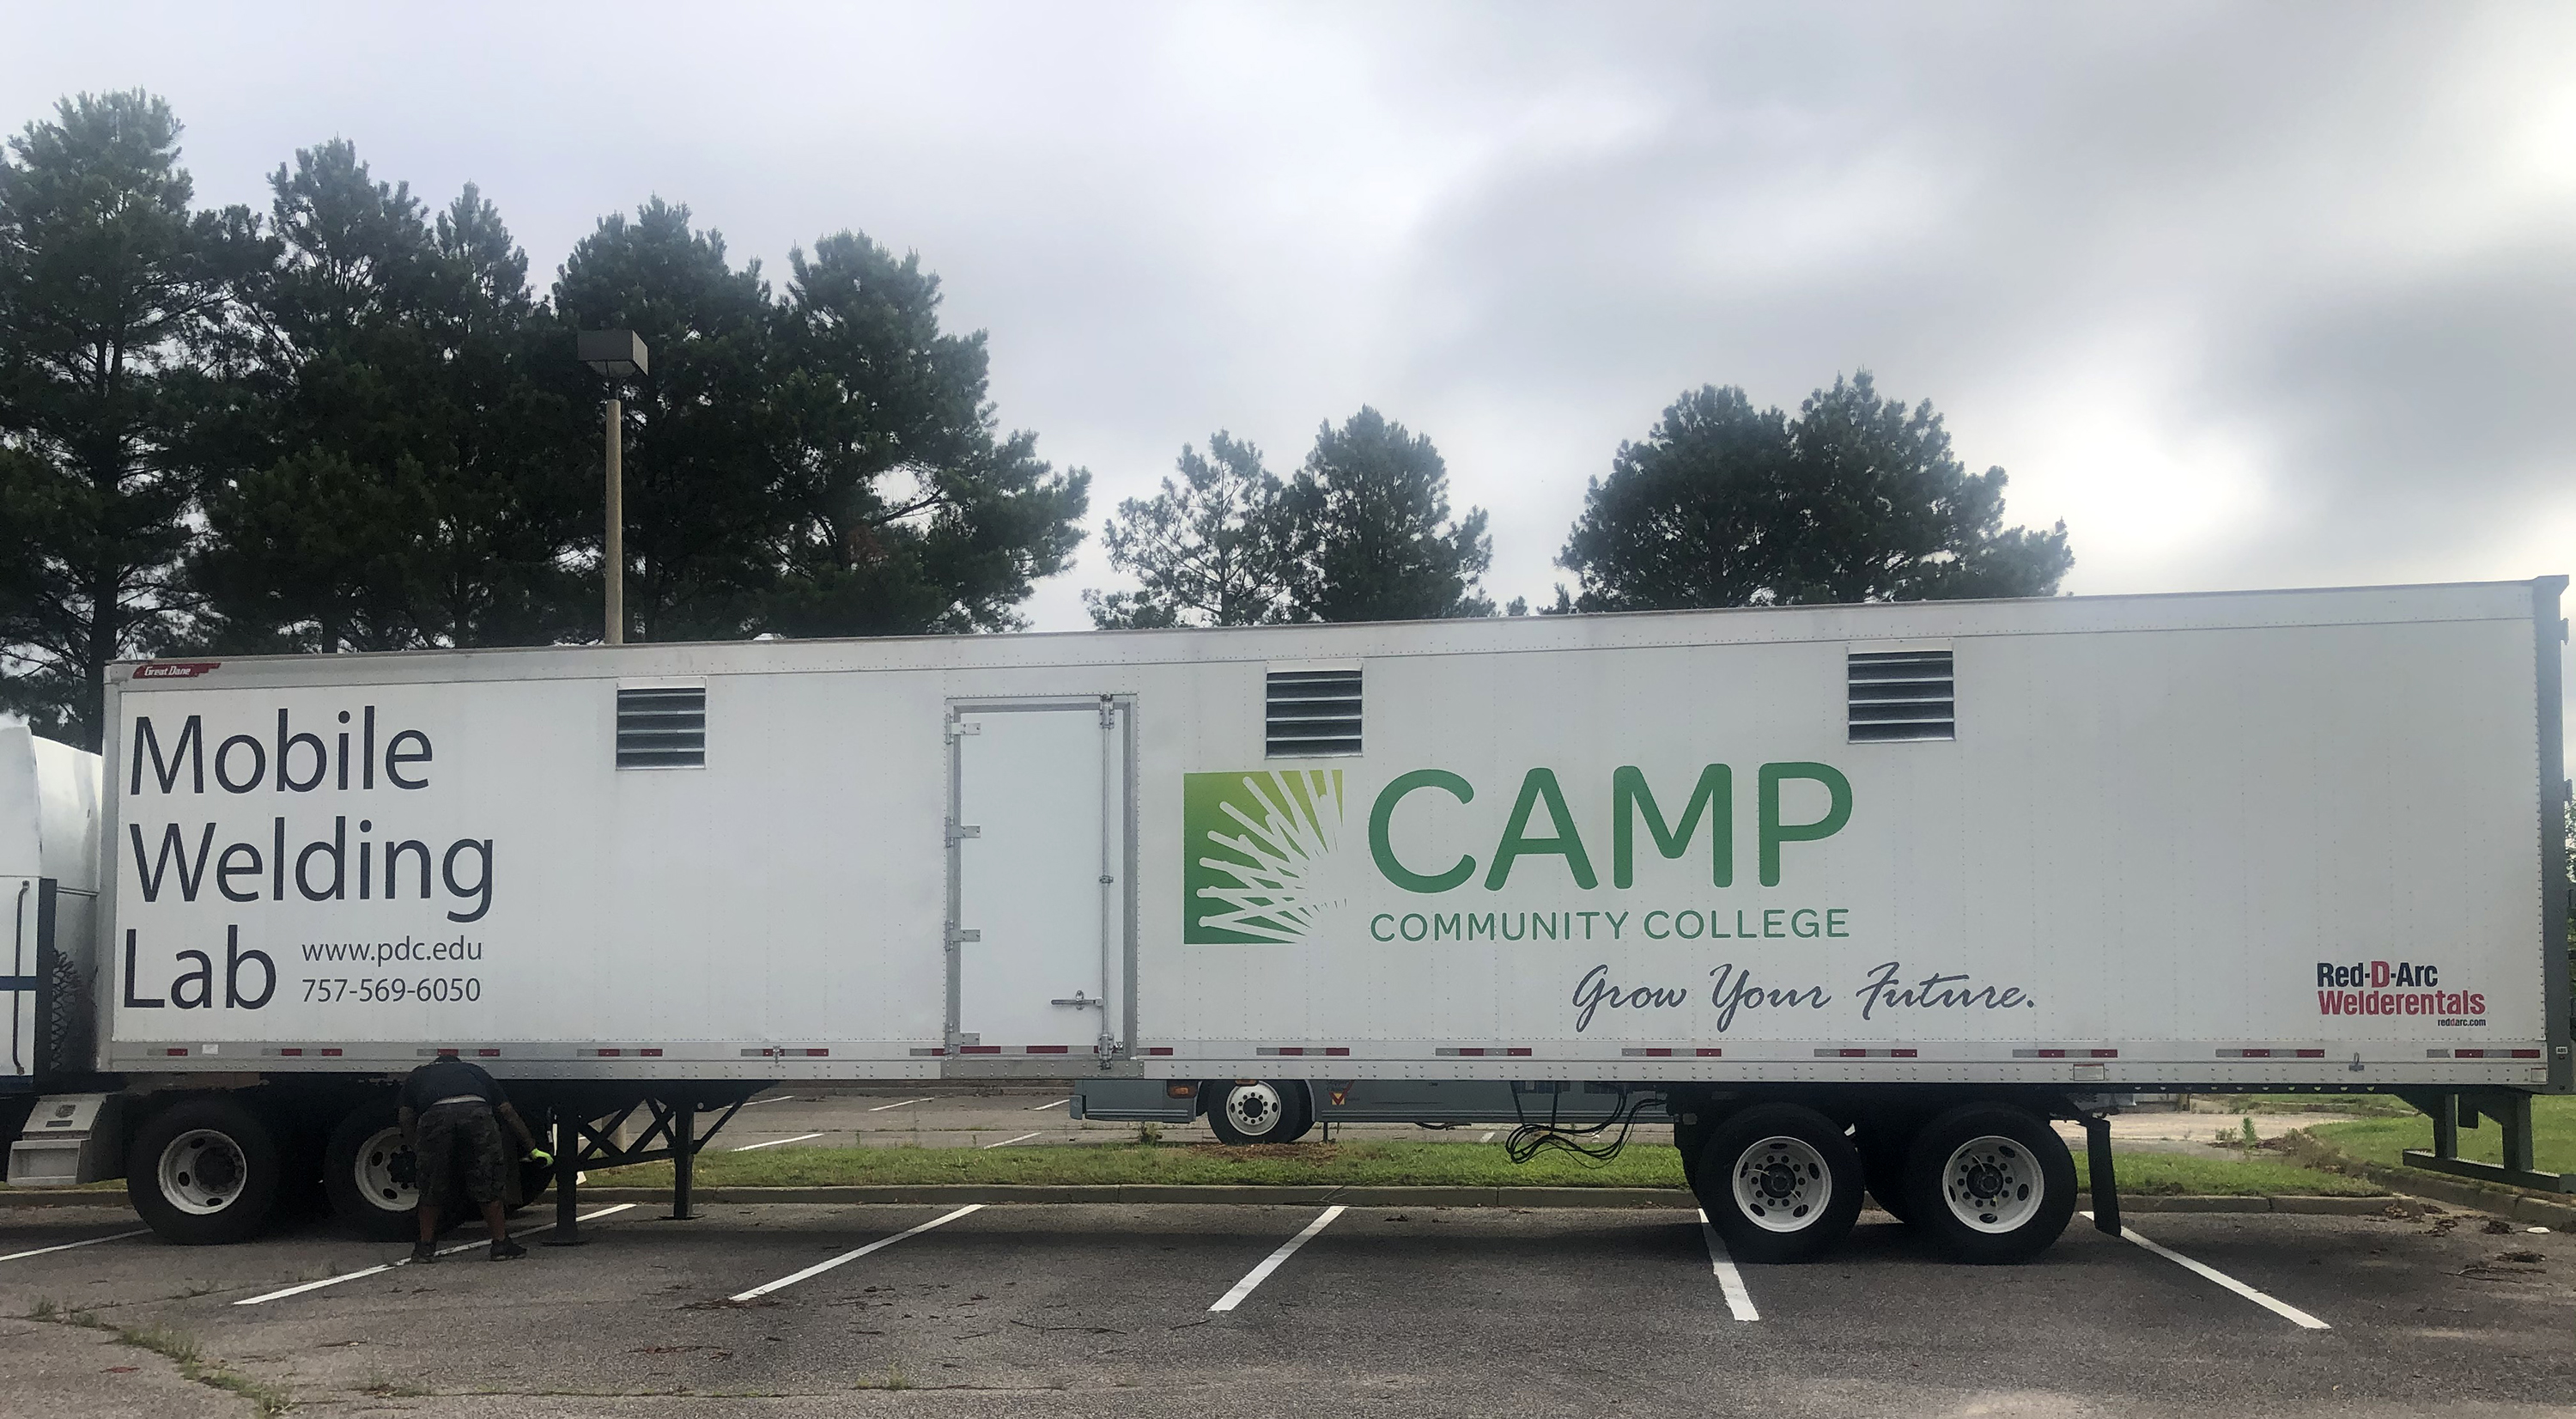 Camp workforce welding on wheels allows classroom to be brought to students